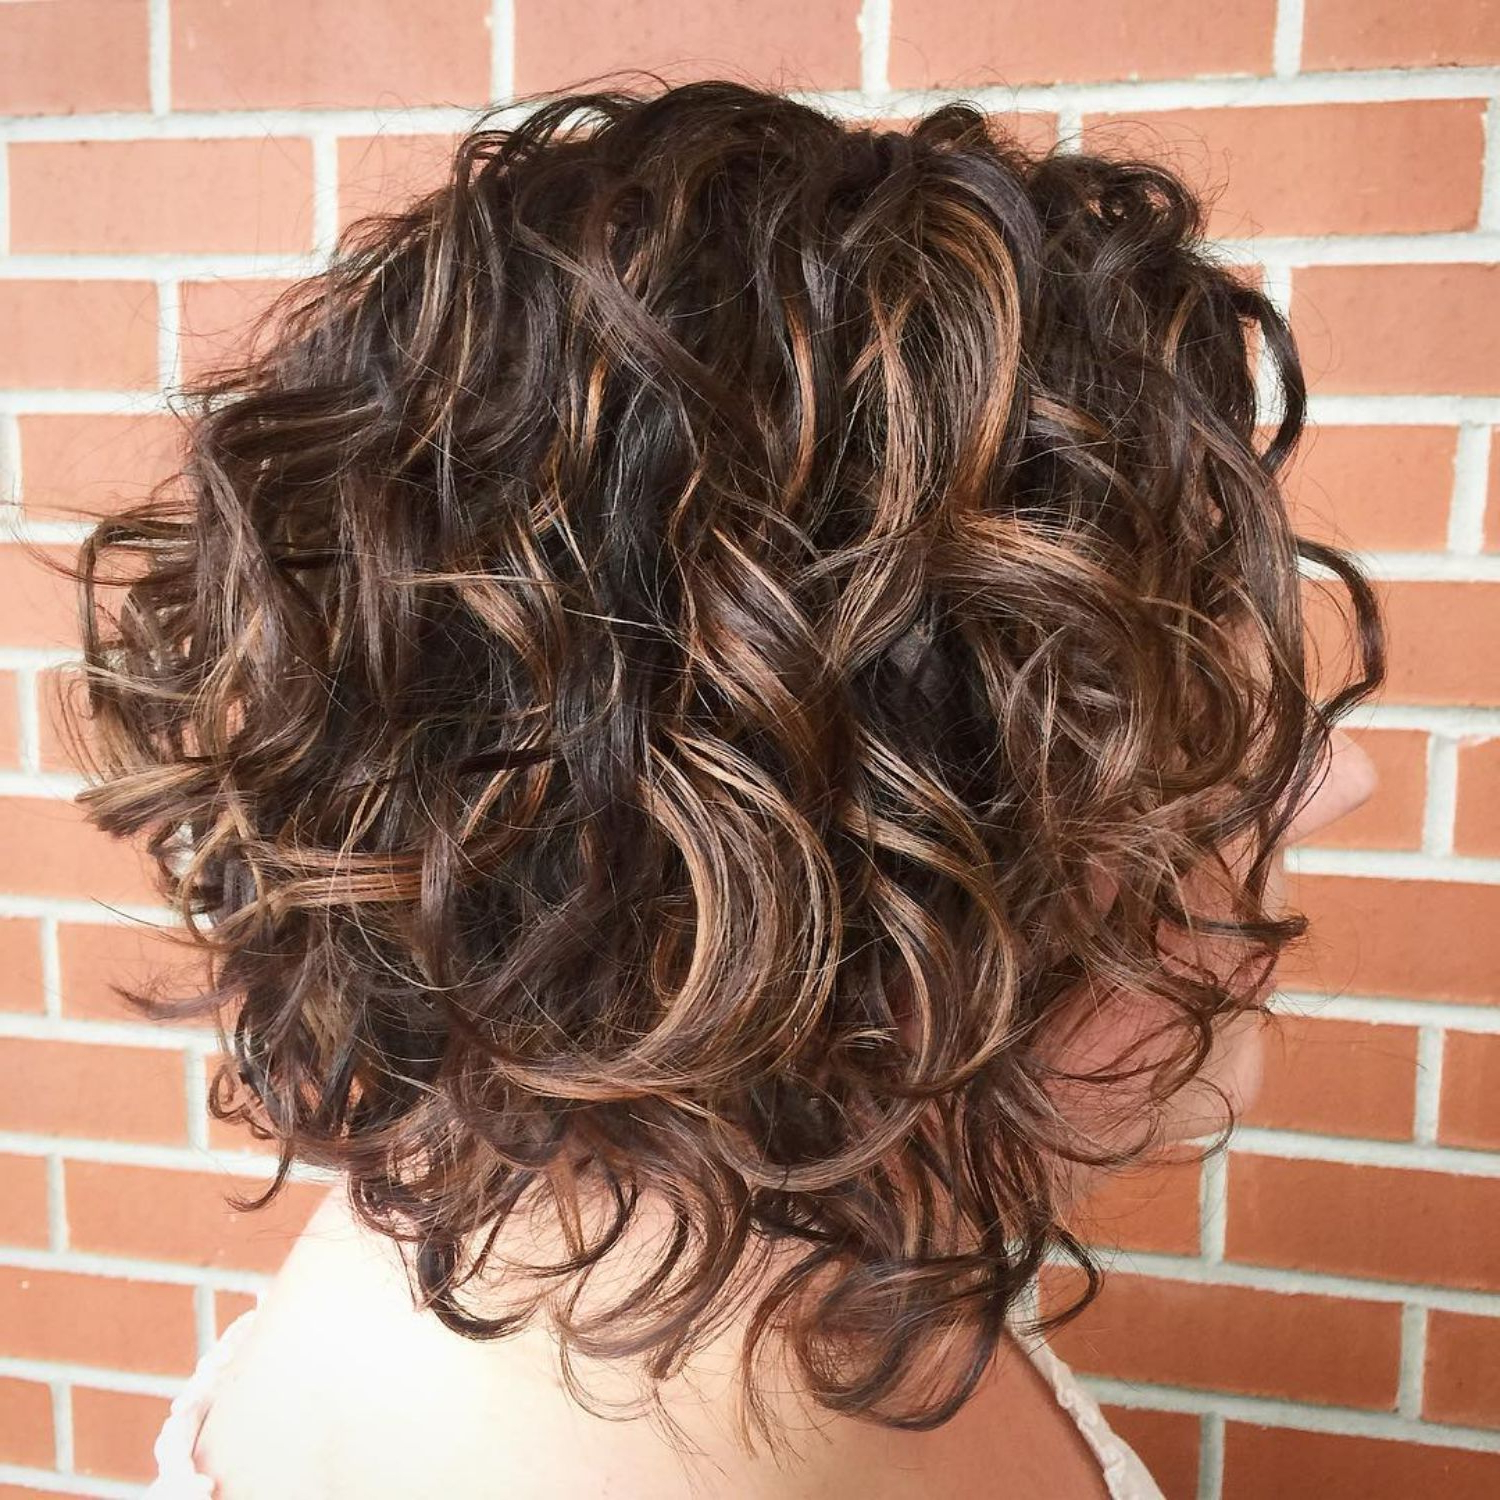 55 Different Versions Of Curly Bob Hairstyle In 2018 | Hair Pertaining To Scrunched Curly Brunette Bob Hairstyles (View 14 of 20)